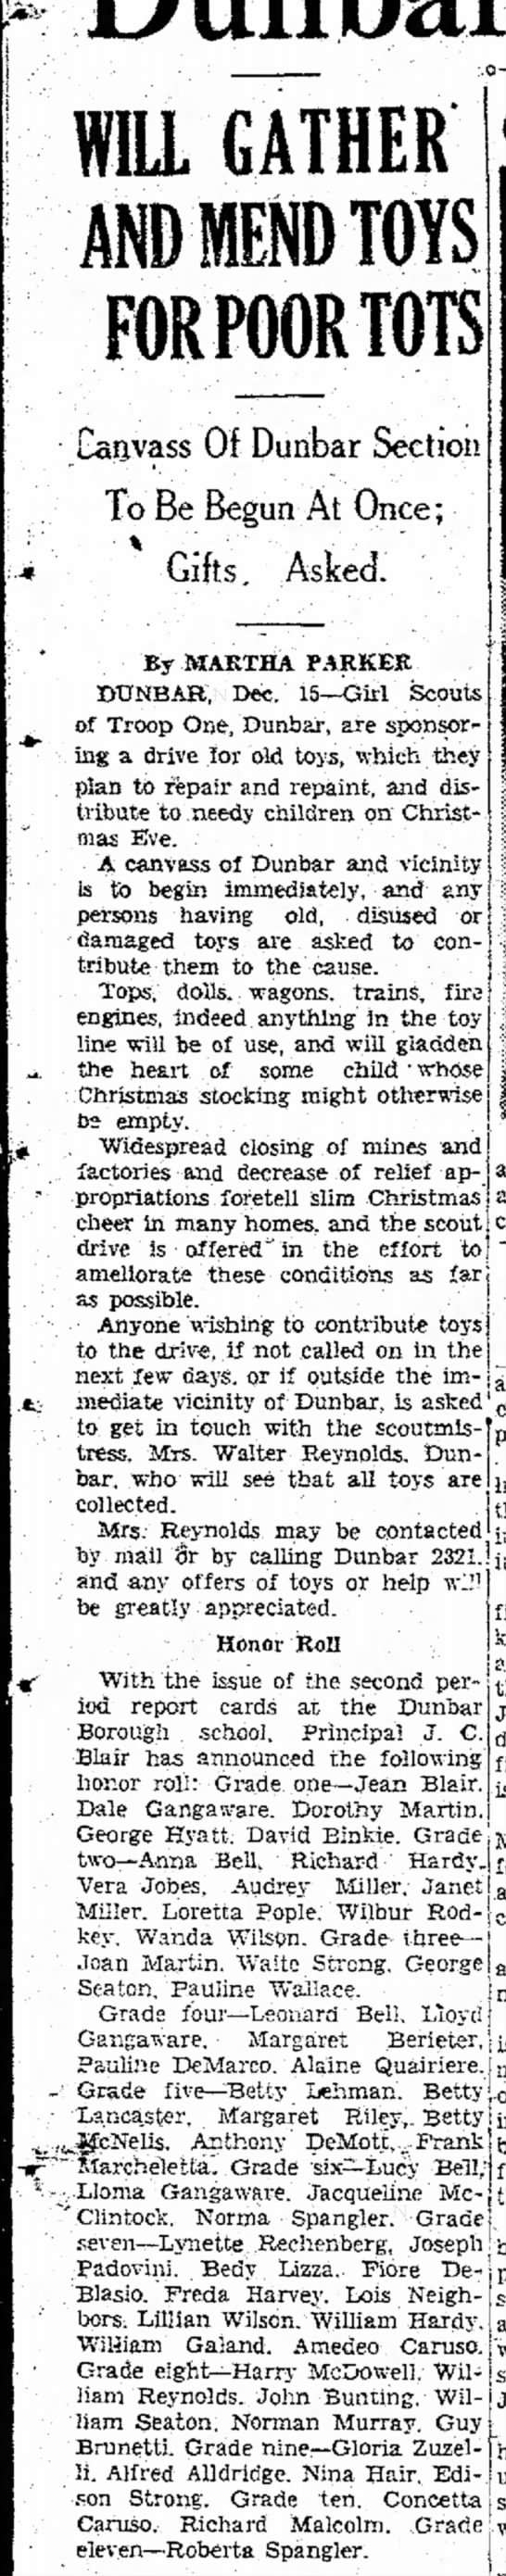 Toy Collection Article Dec. 15, 1937